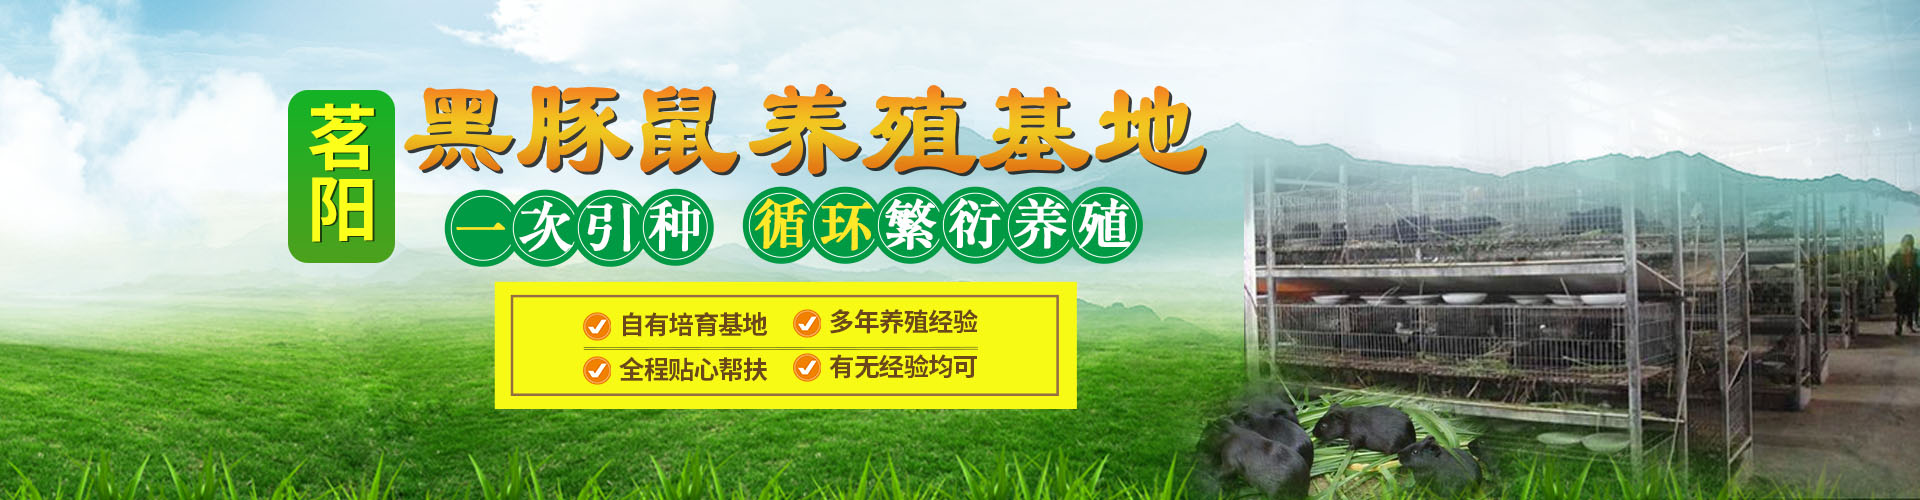 黑豚鼠banner2